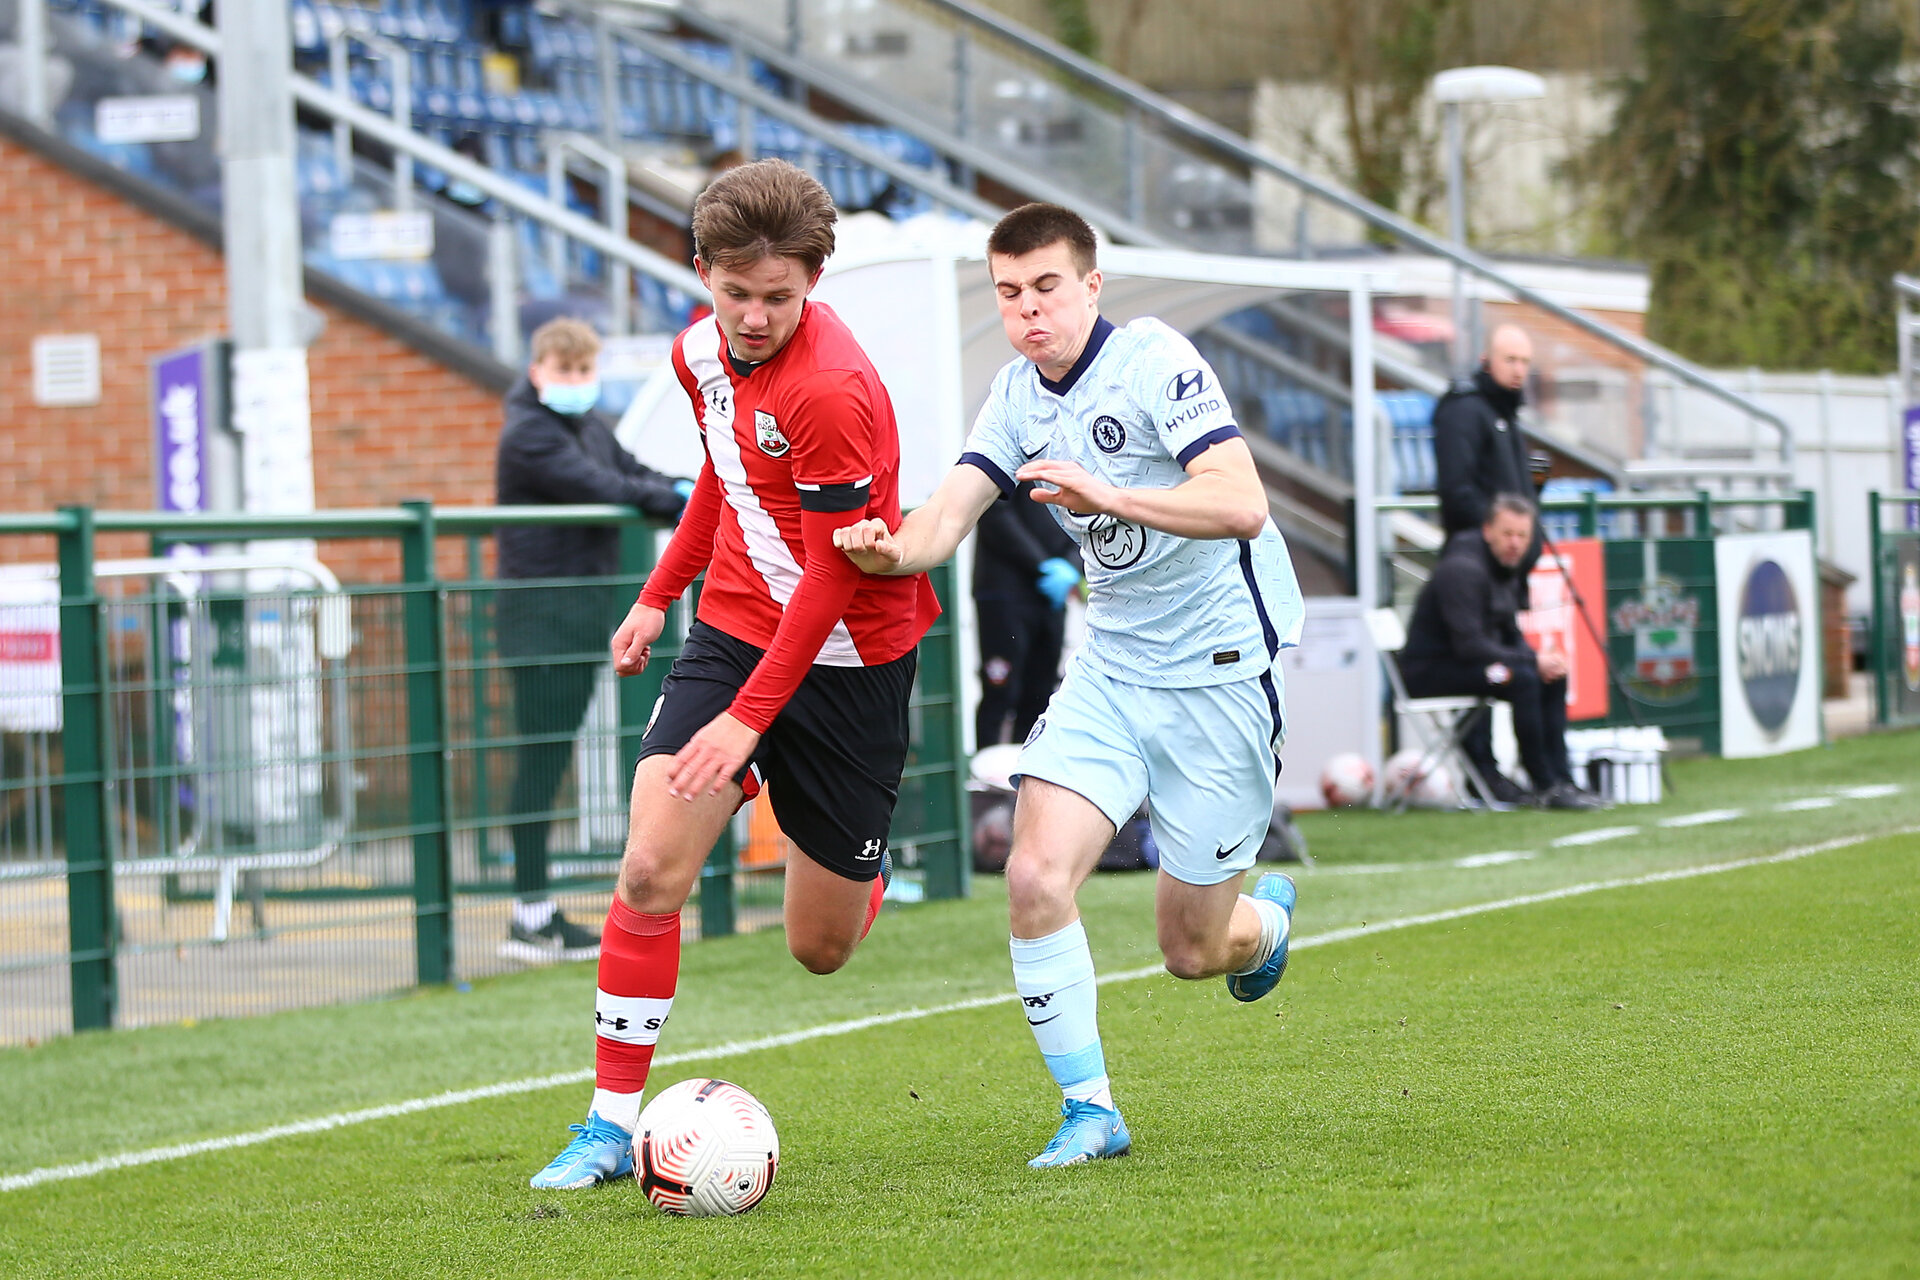 SOUTHAMPTON, ENGLAND - MARCH 27:  during the Premier League U18s match between Southampton U18 and  Chelsea at Snows Stadium on March 27, 2021 in Southampton, England. (Photo by Isabelle Field/Southamtpon FC)